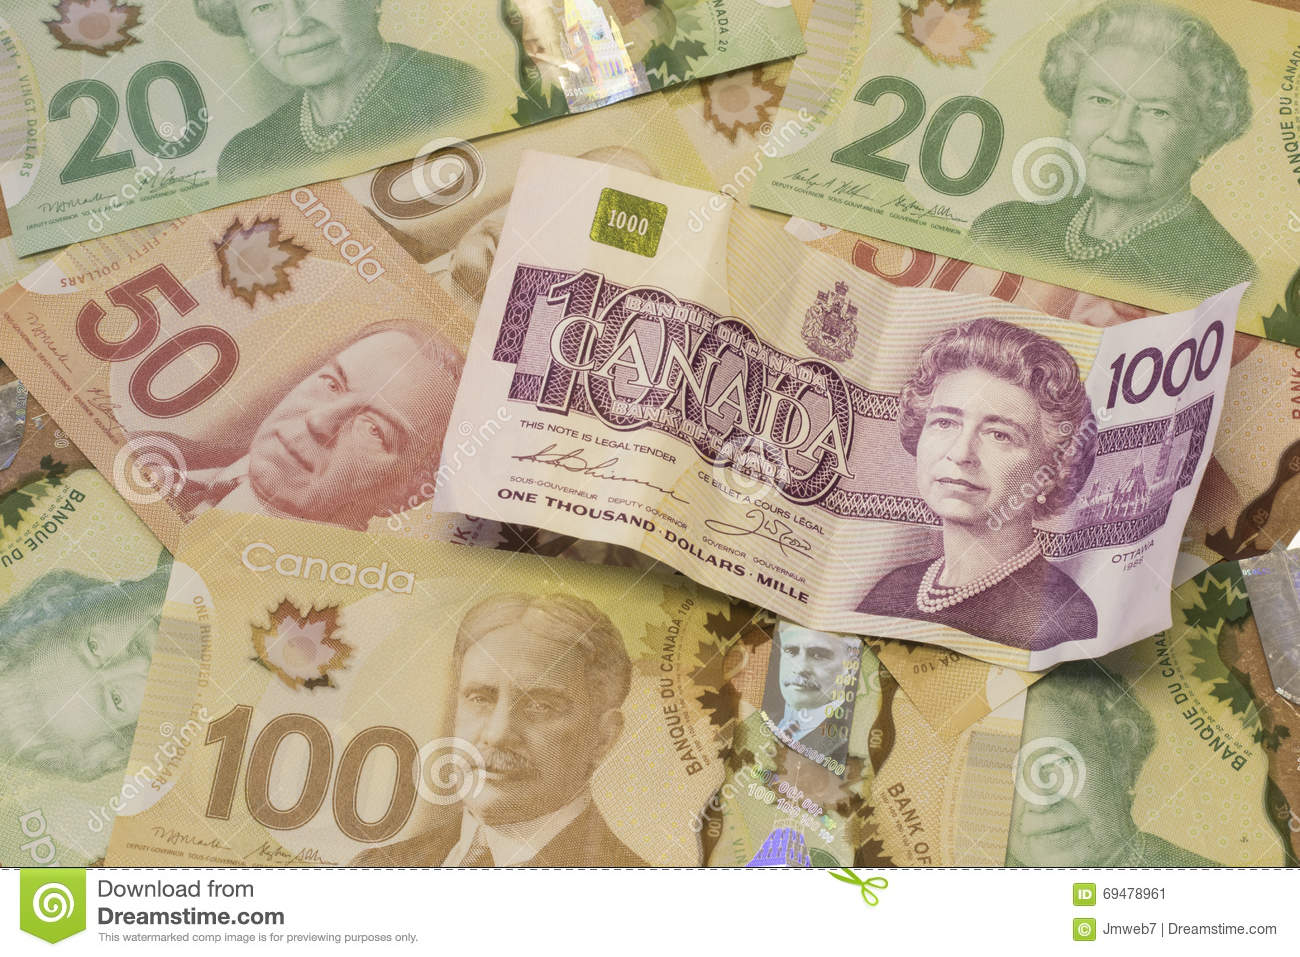 Economic Events That Impact the Canadian Dollar | economic calendar